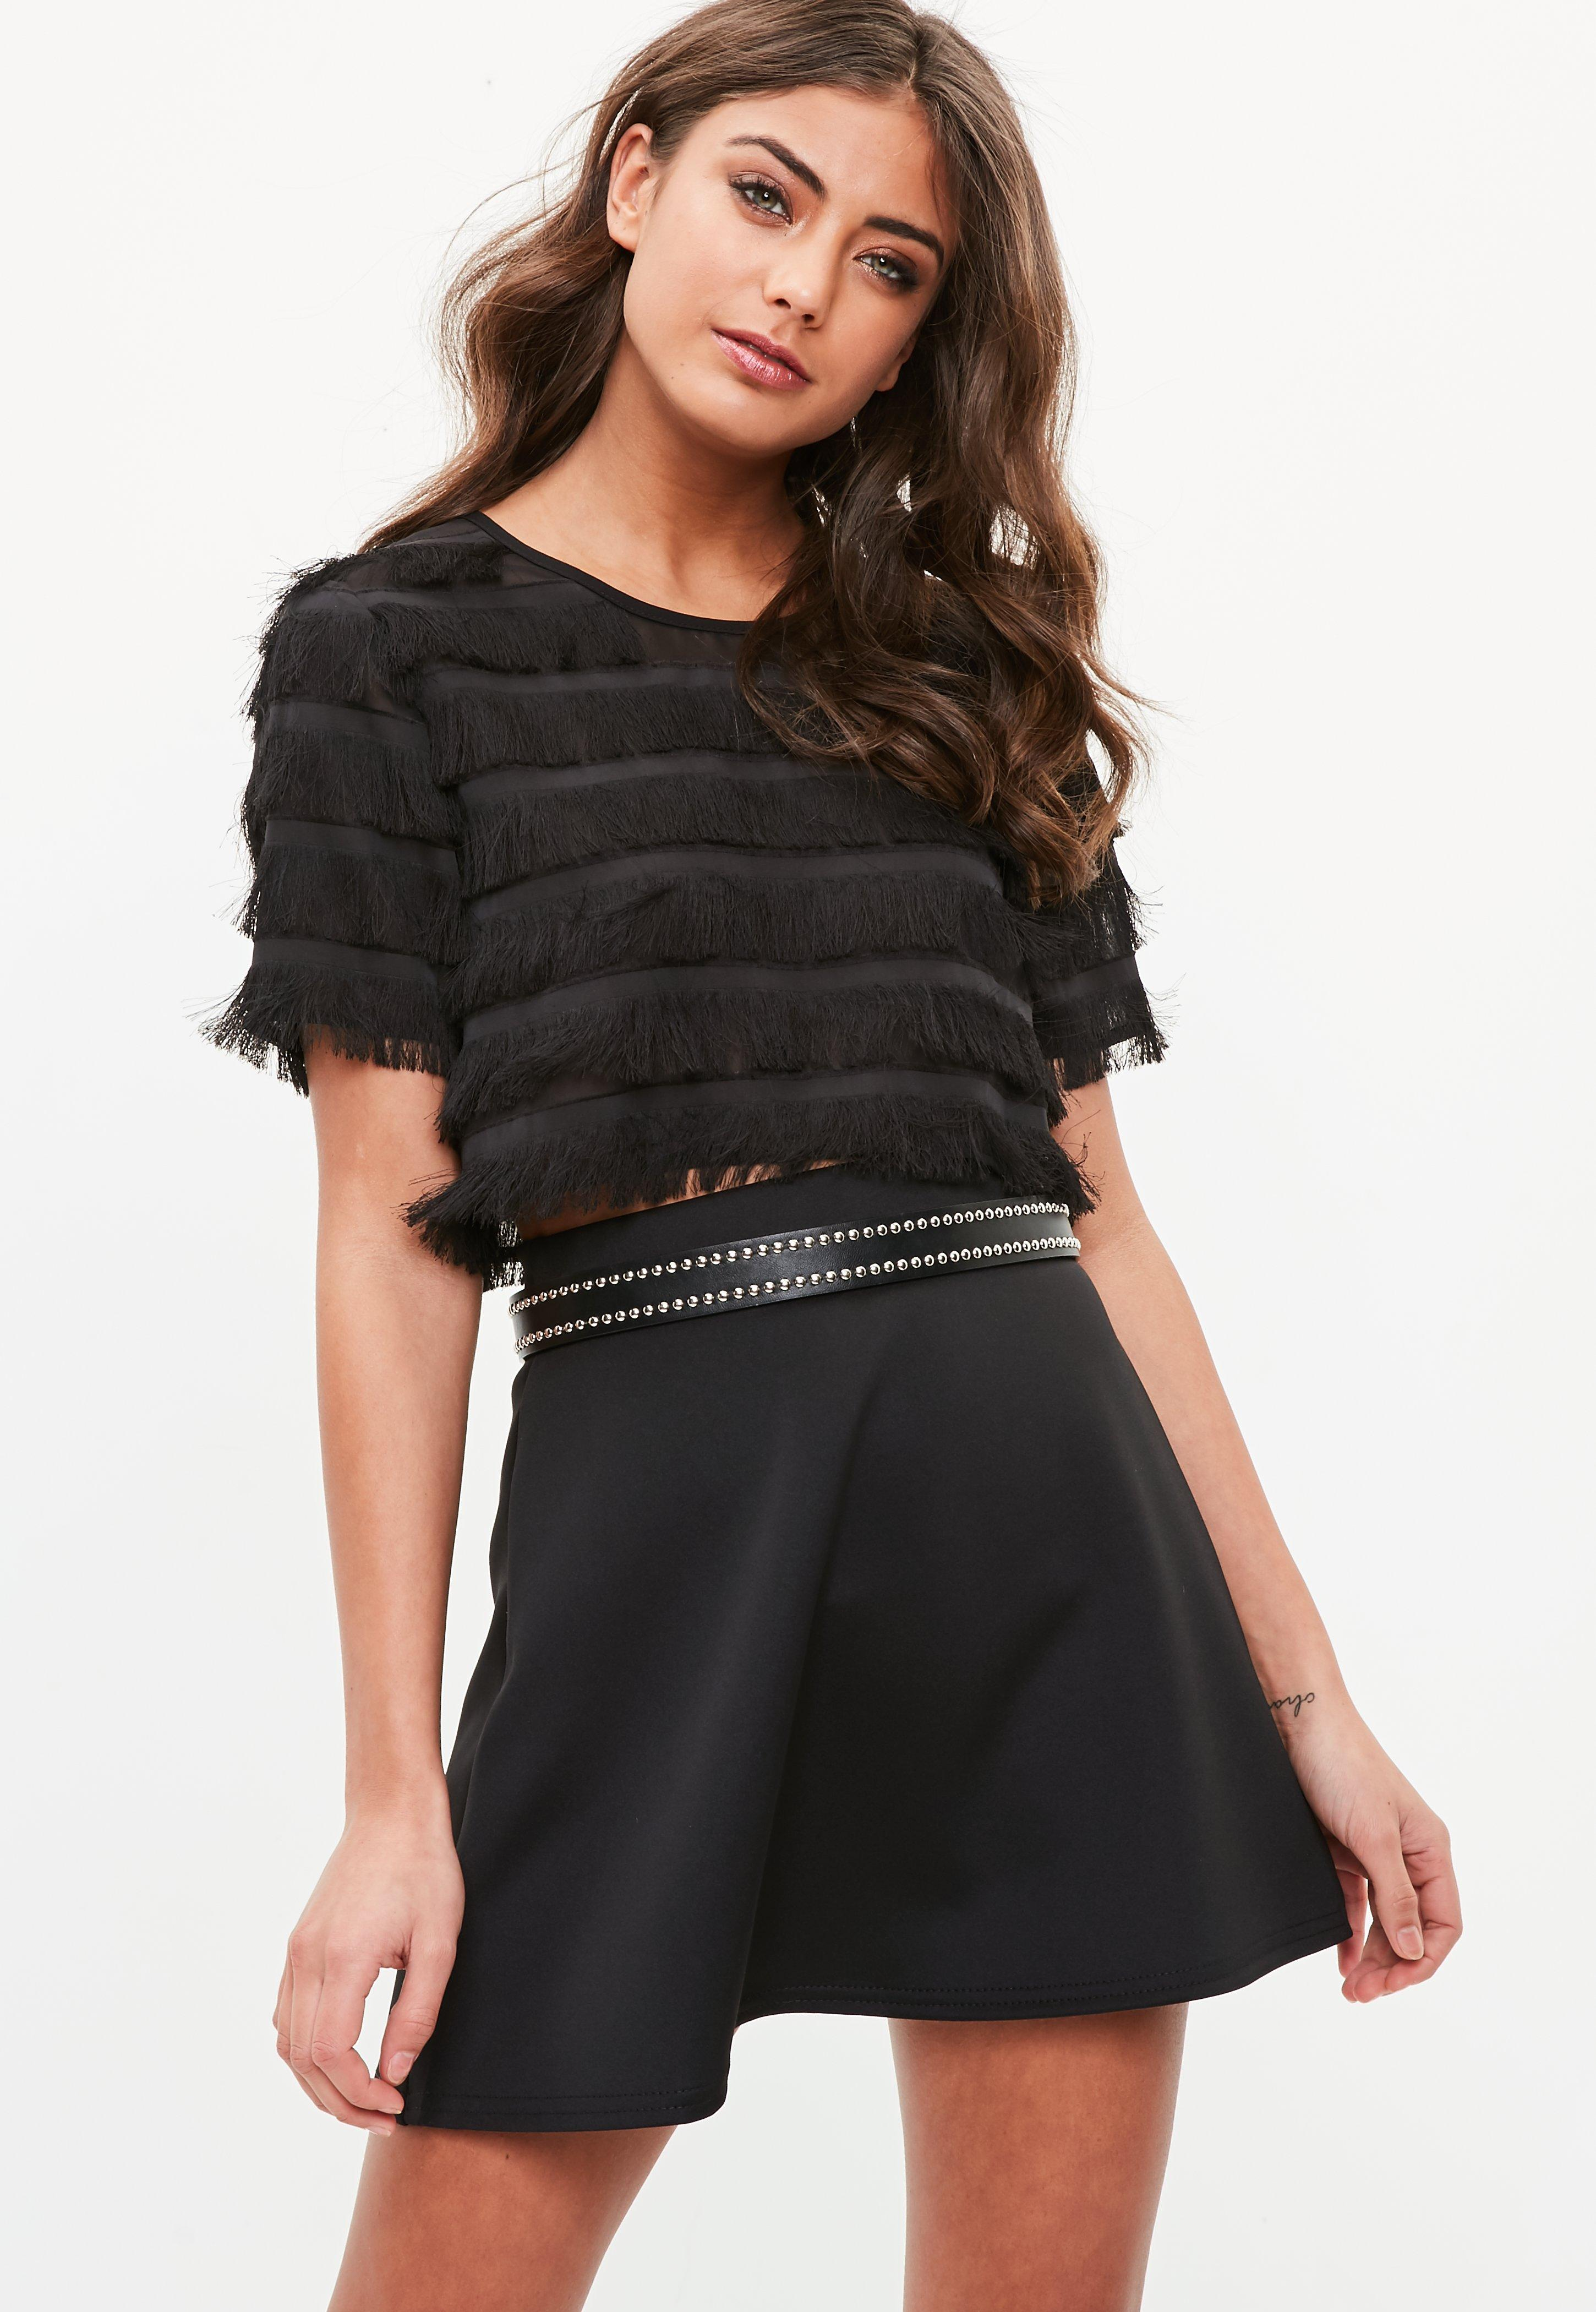 Cheap Best Prices Reliable Sale Online Missguided Rodeo Fringe Crop Top Sale Really 2018 Cheap Online XB7DQyDeK